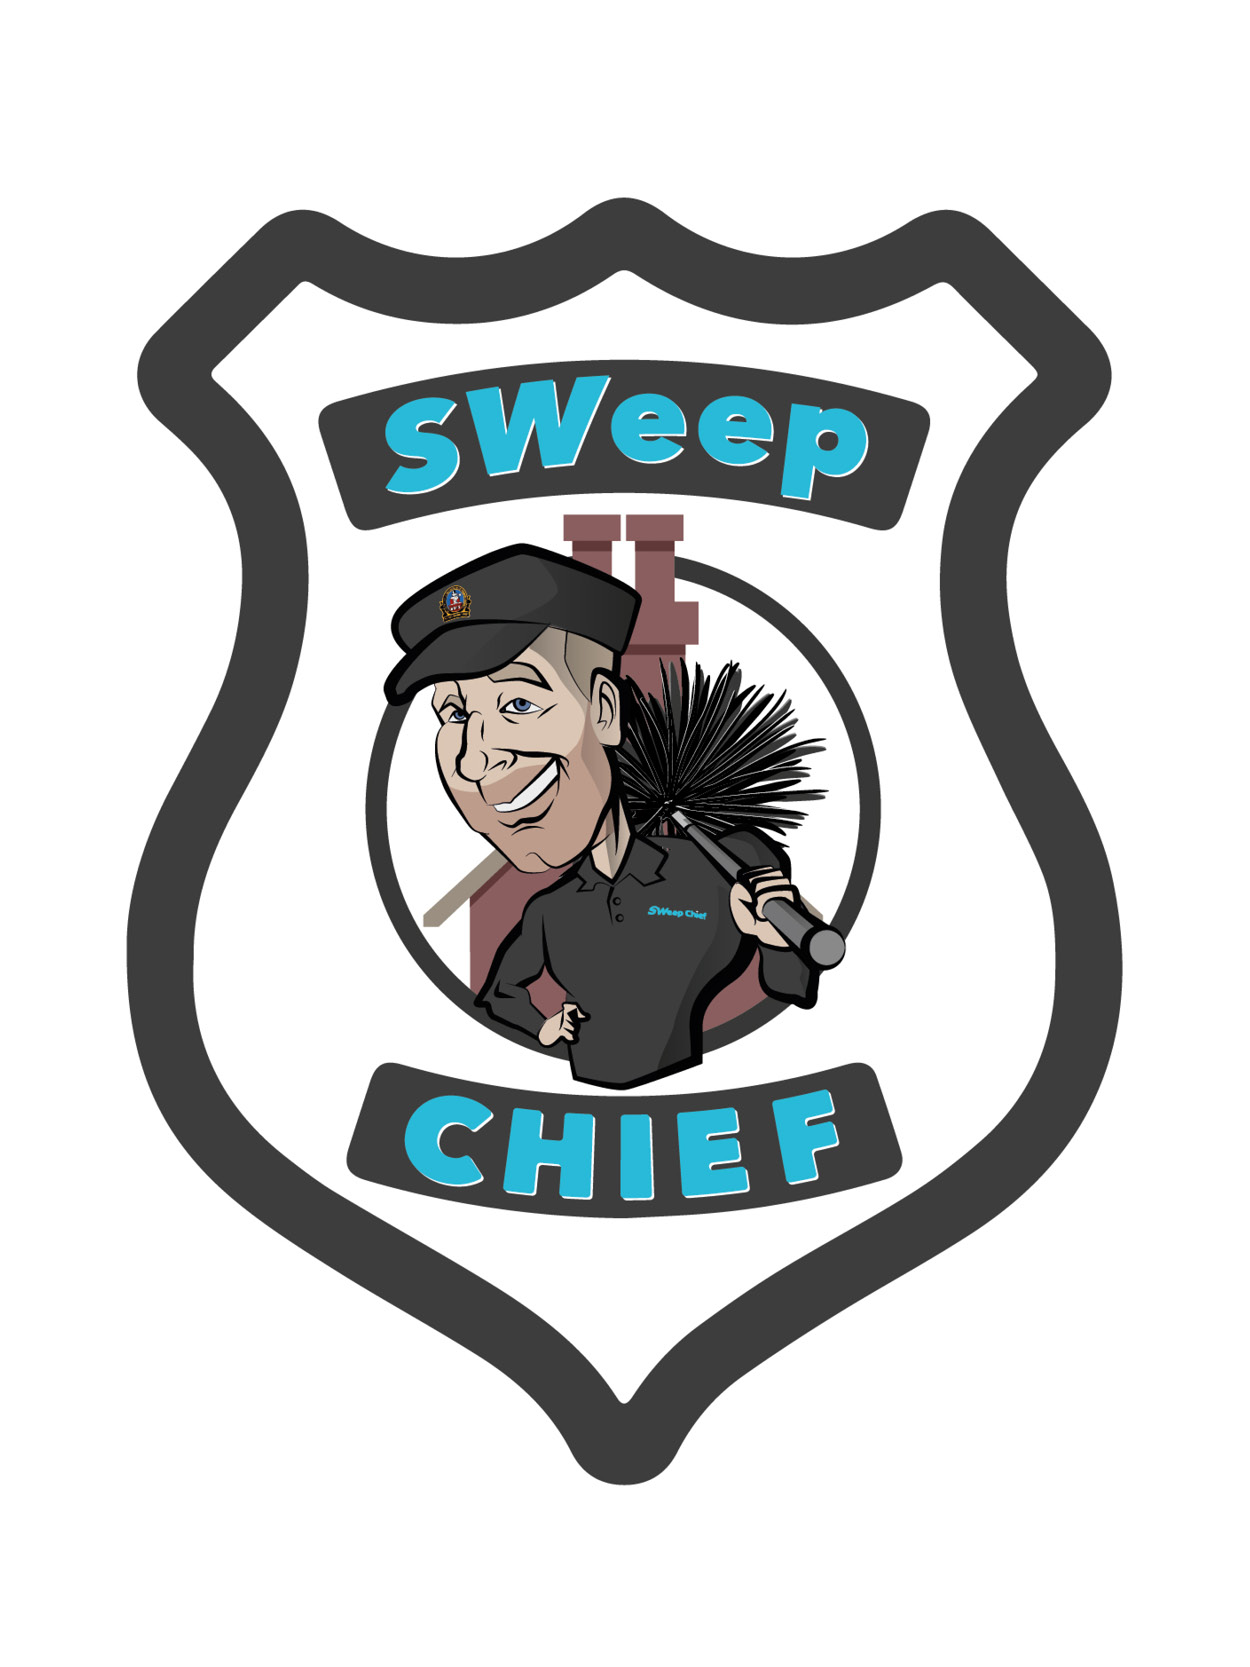 SWeep Chief